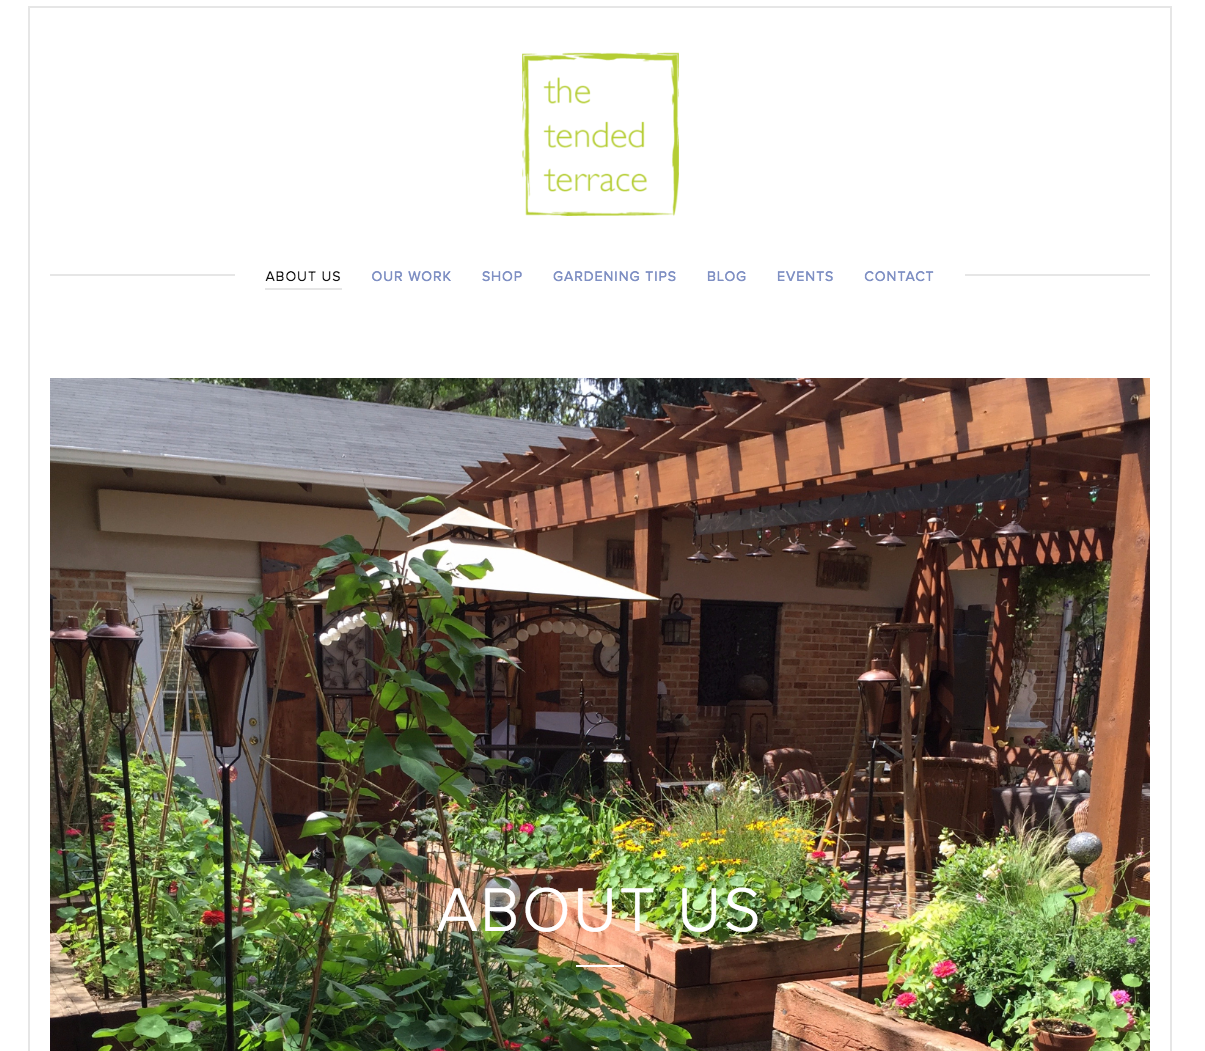 The Tended Terrace Website